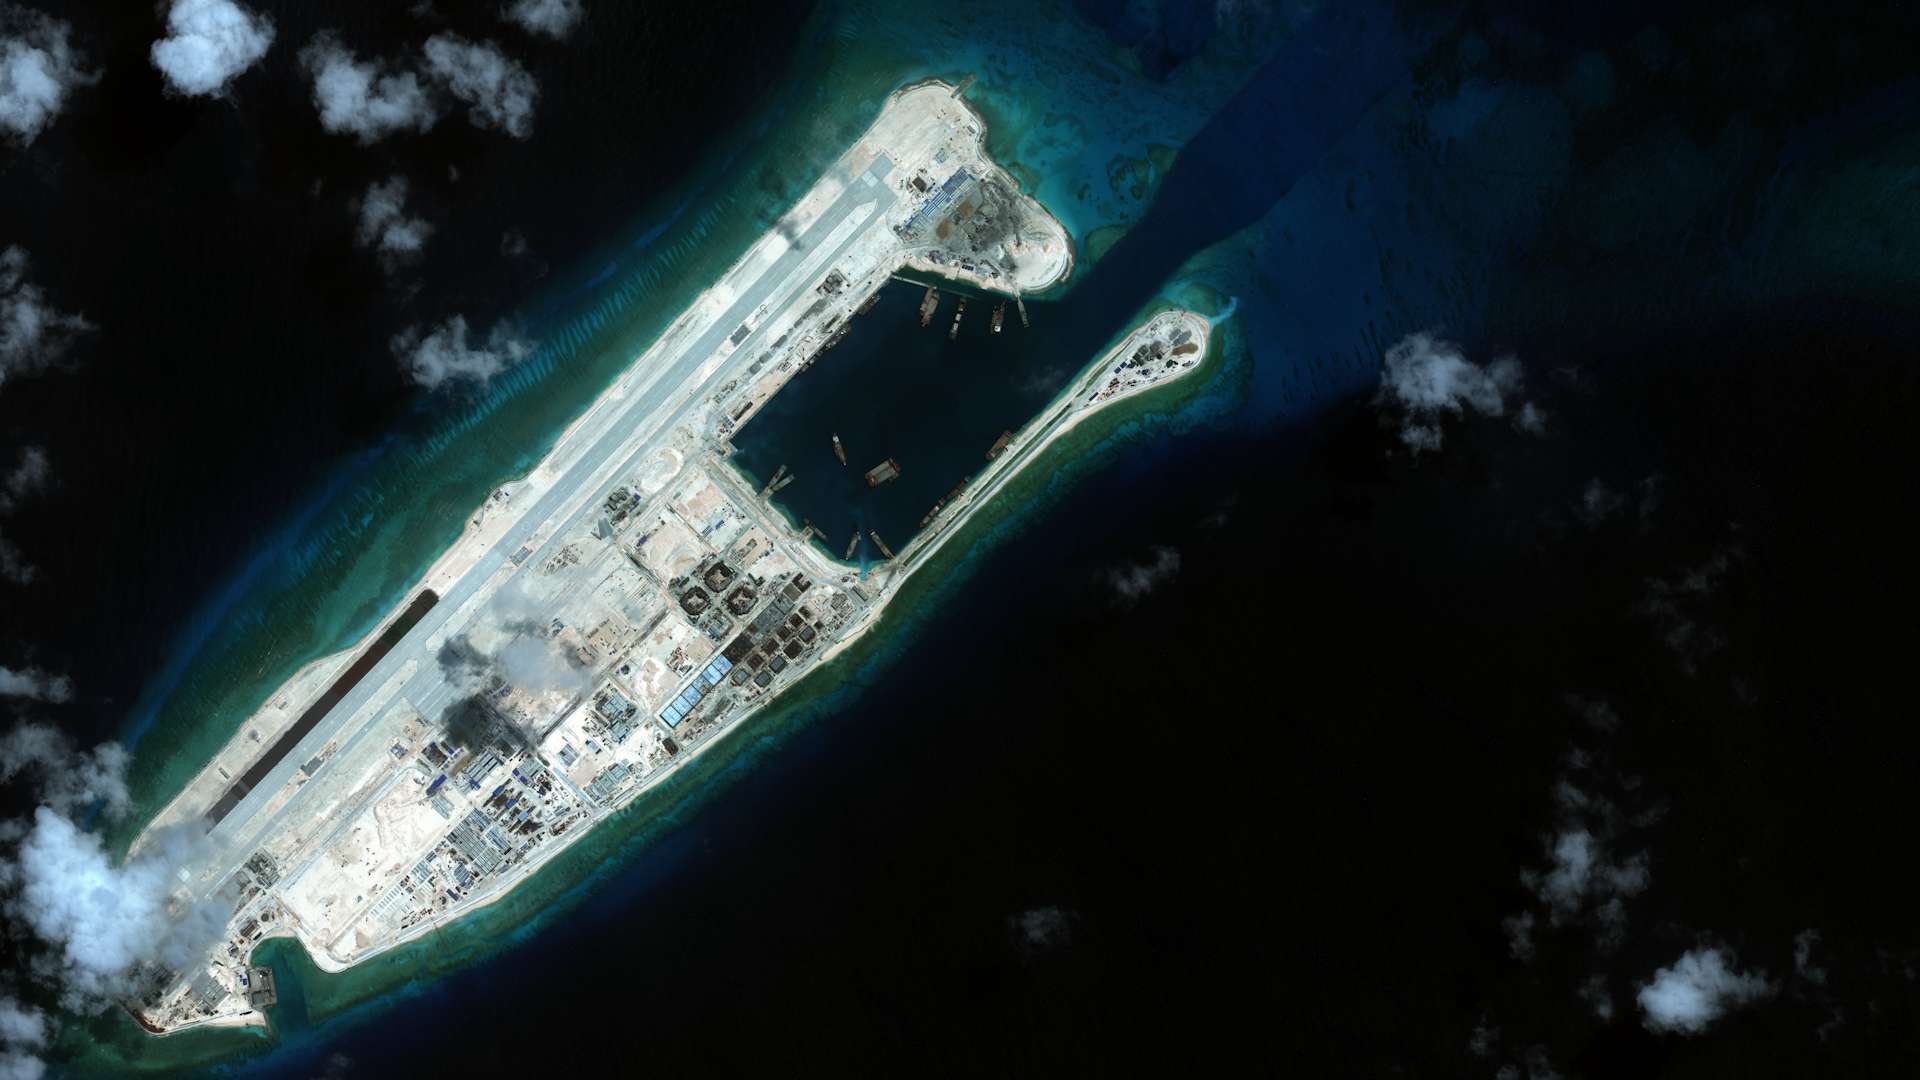 Beijing's claims to South China Sea rejected by international tribunal